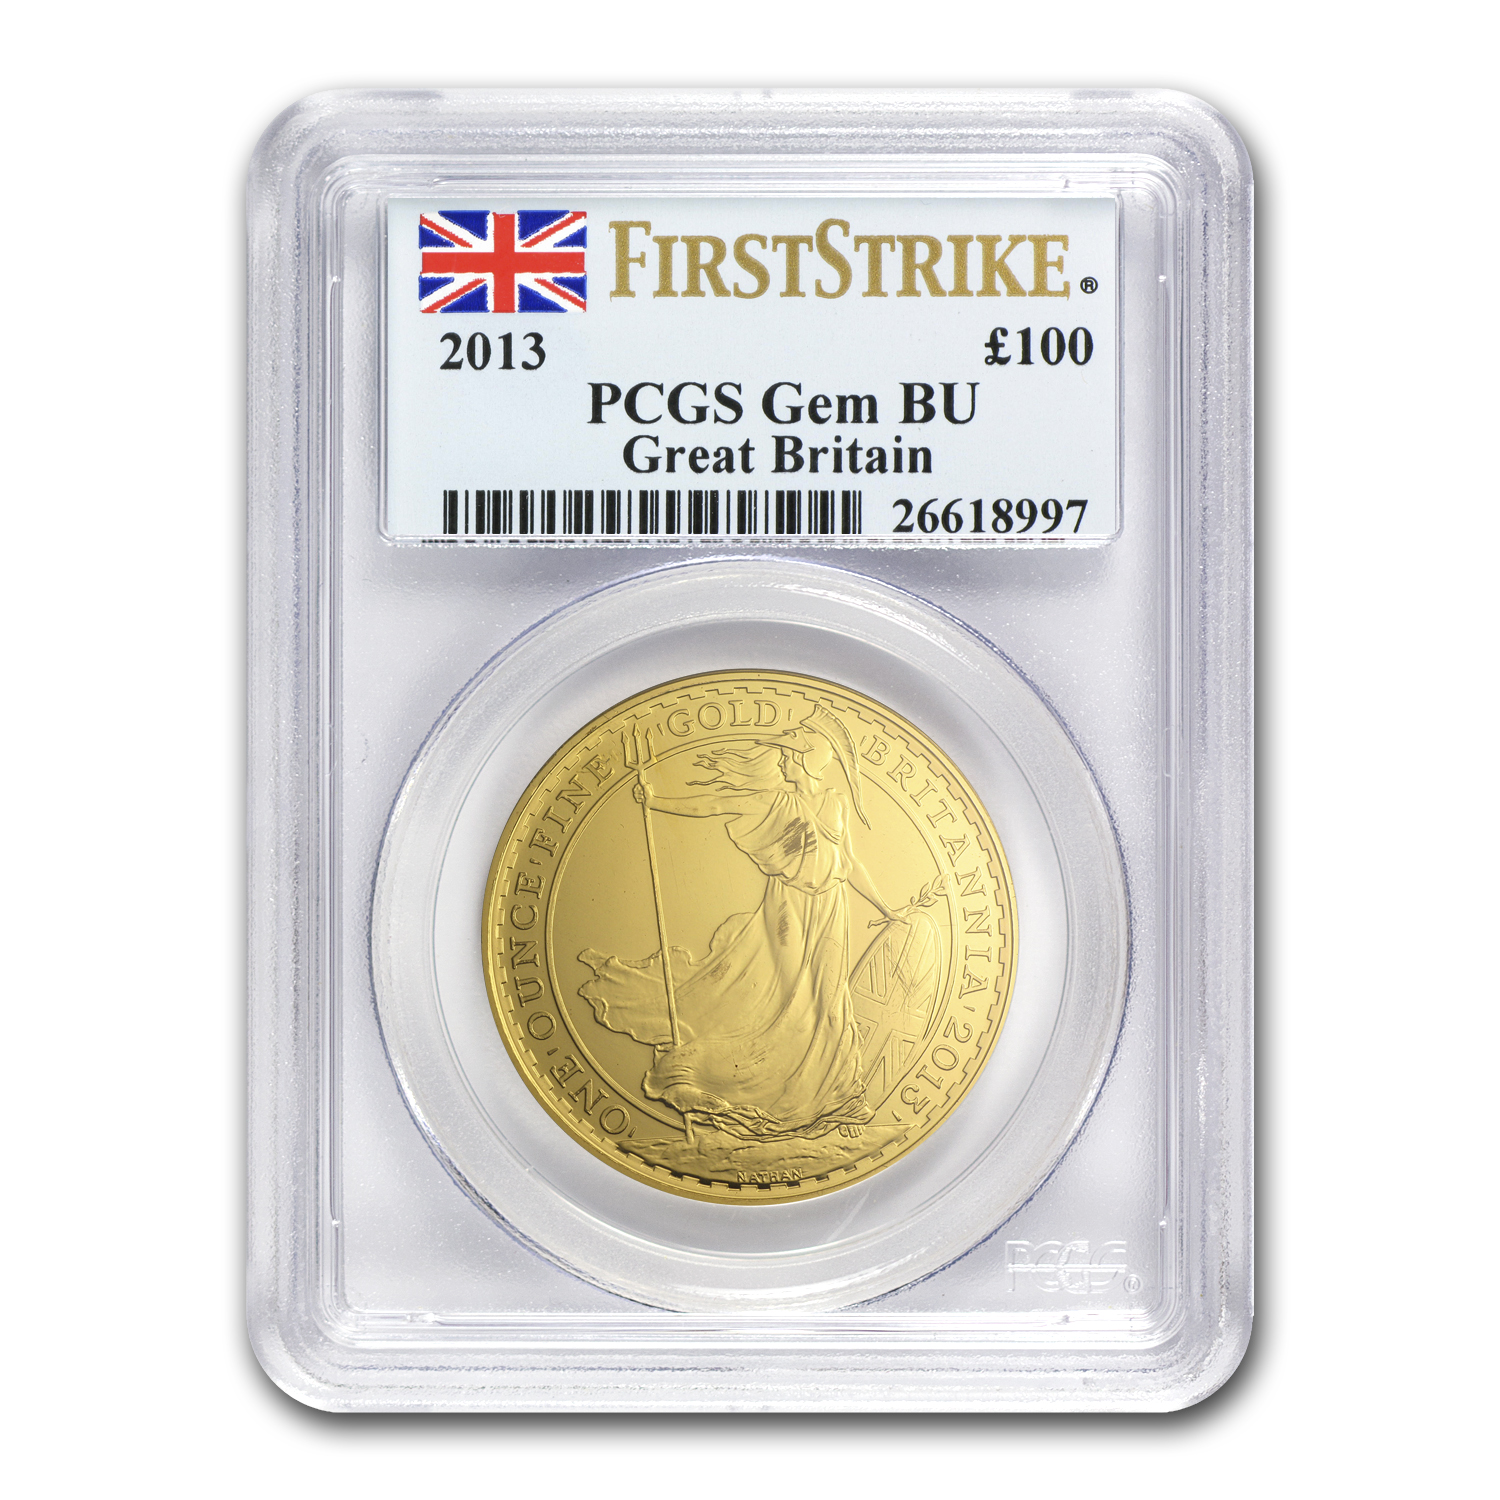 2013 1 oz Gold Britannia PCGS Gem BU First Strike